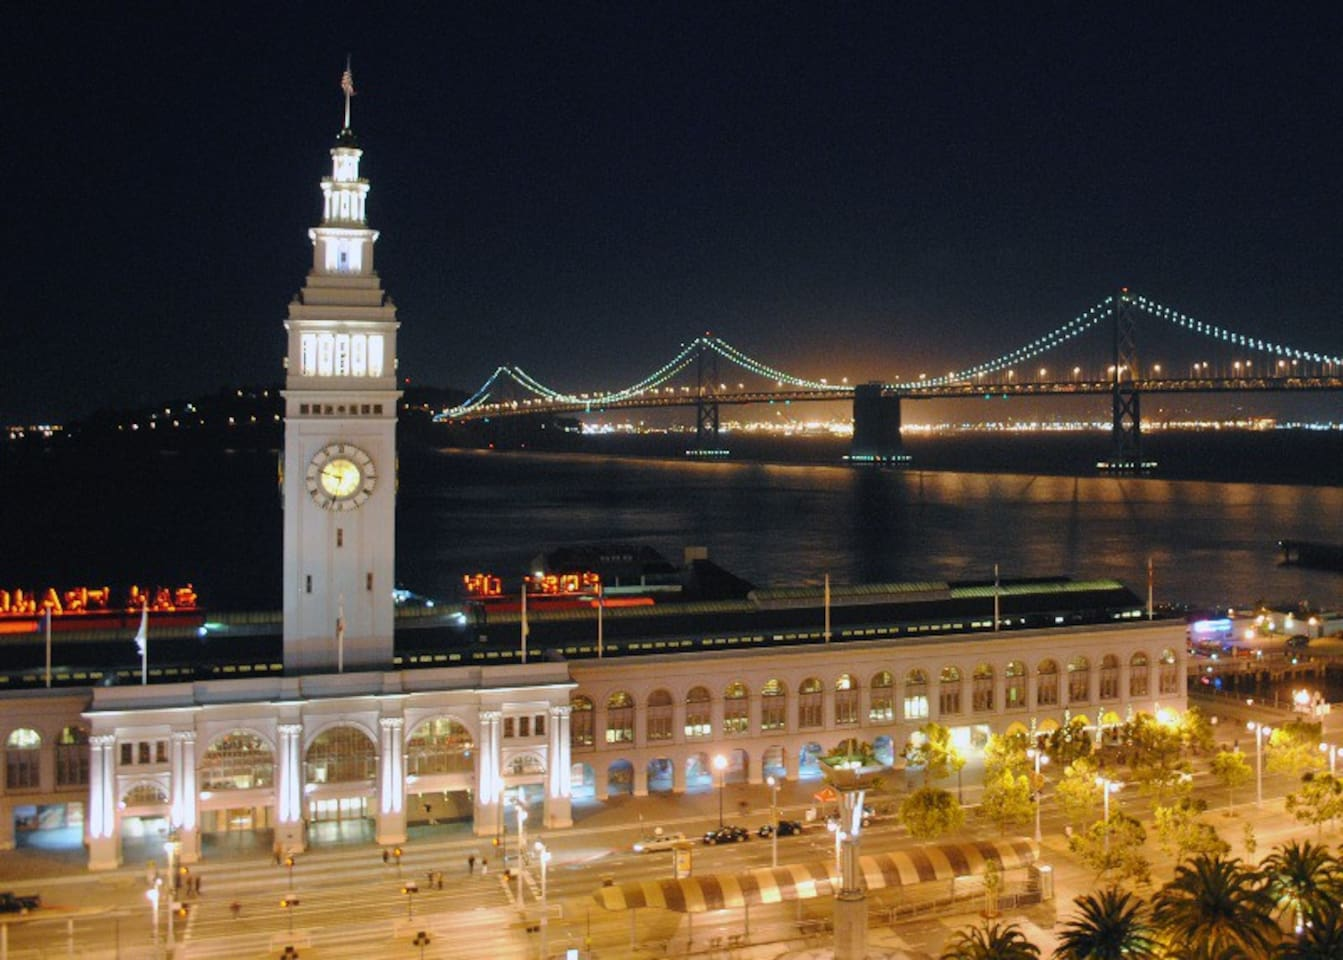 The Ferry Building is just a few minutes away.